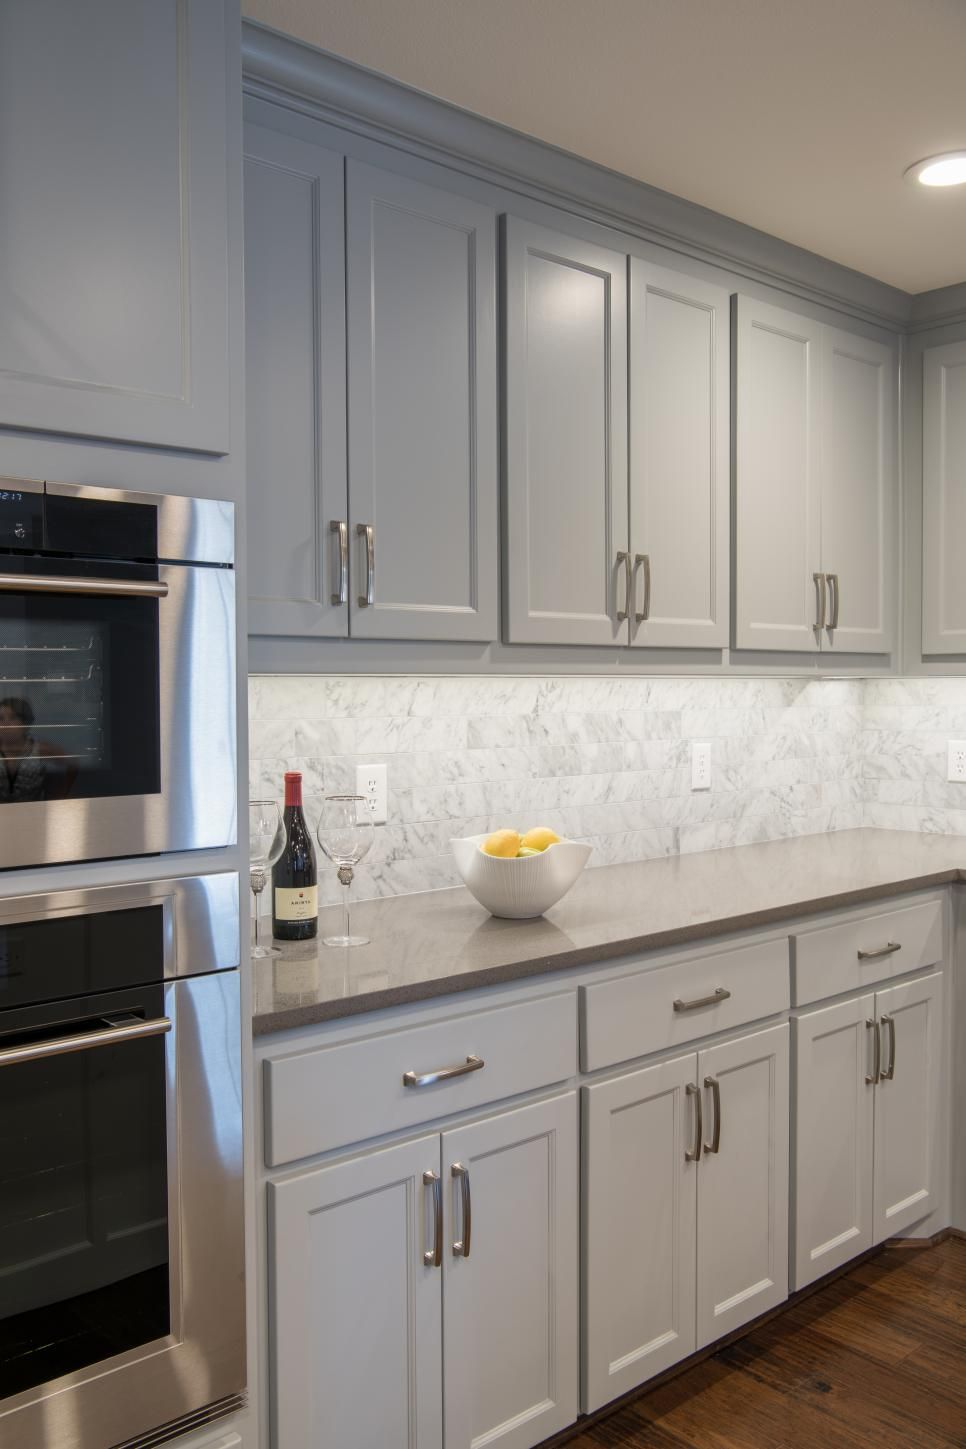 Learn about search viewer from hgtv kitchens pinterest kitchen